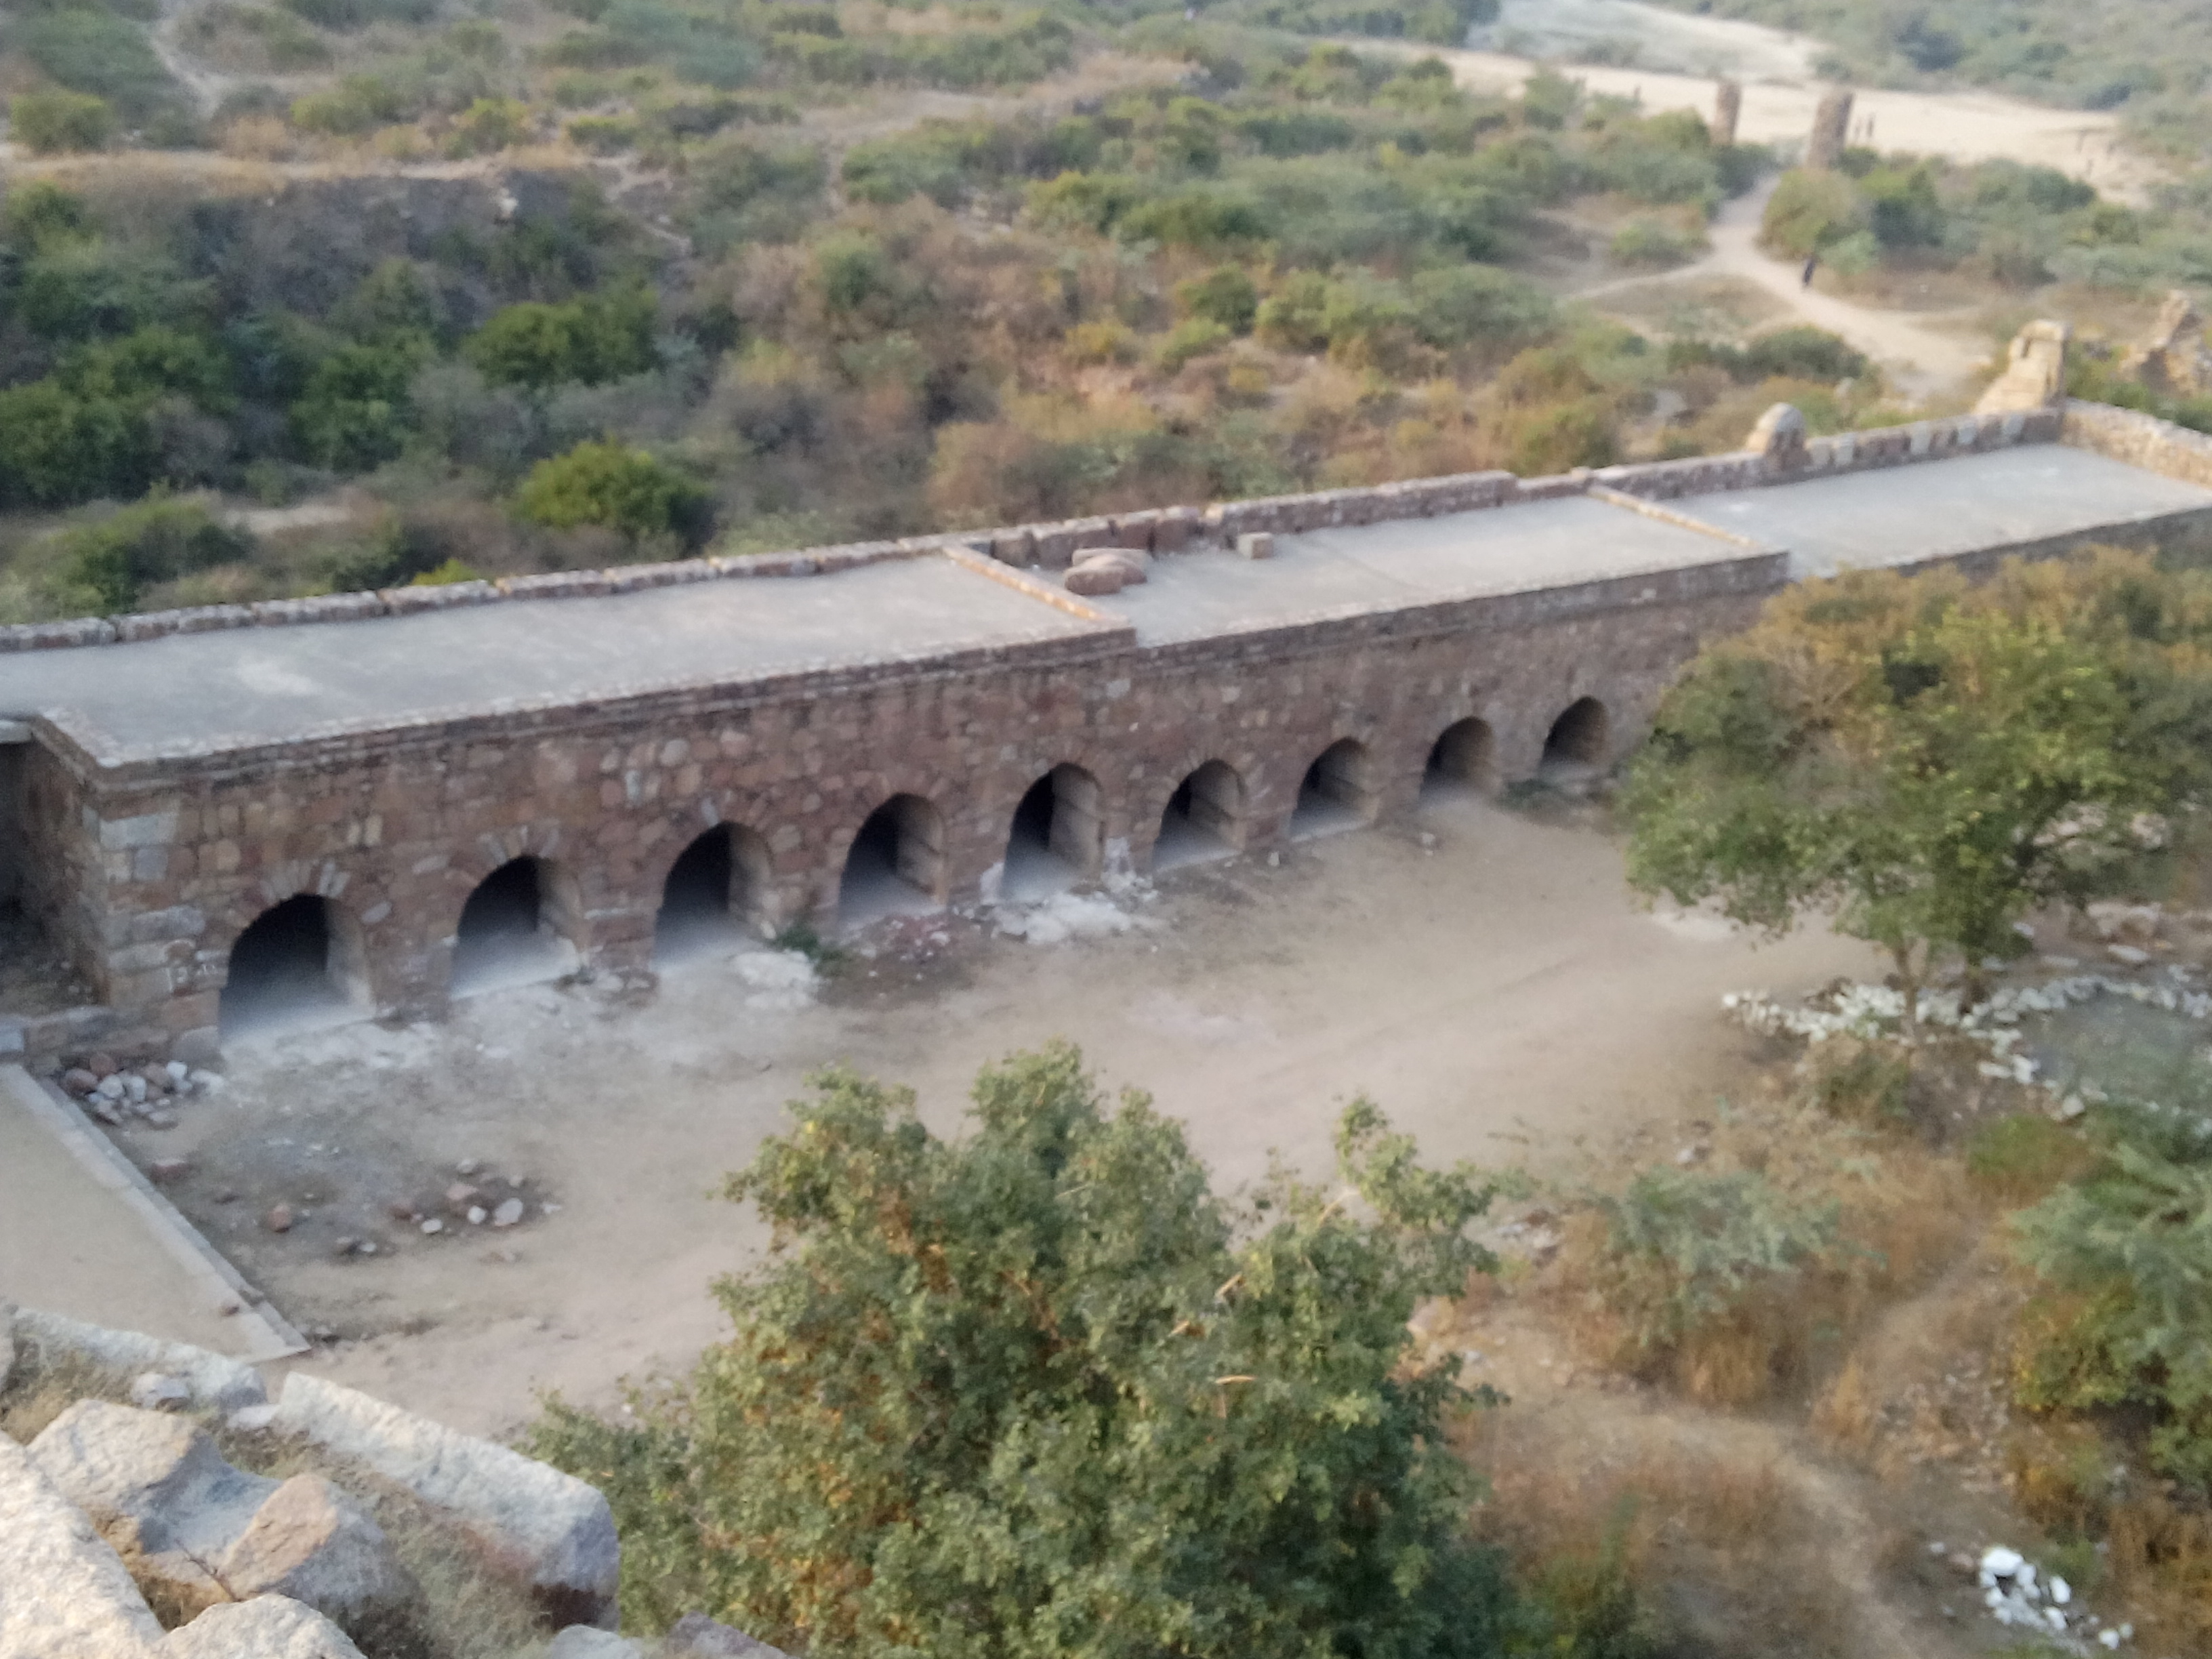 Cells made inside Tughlaqabad Fort